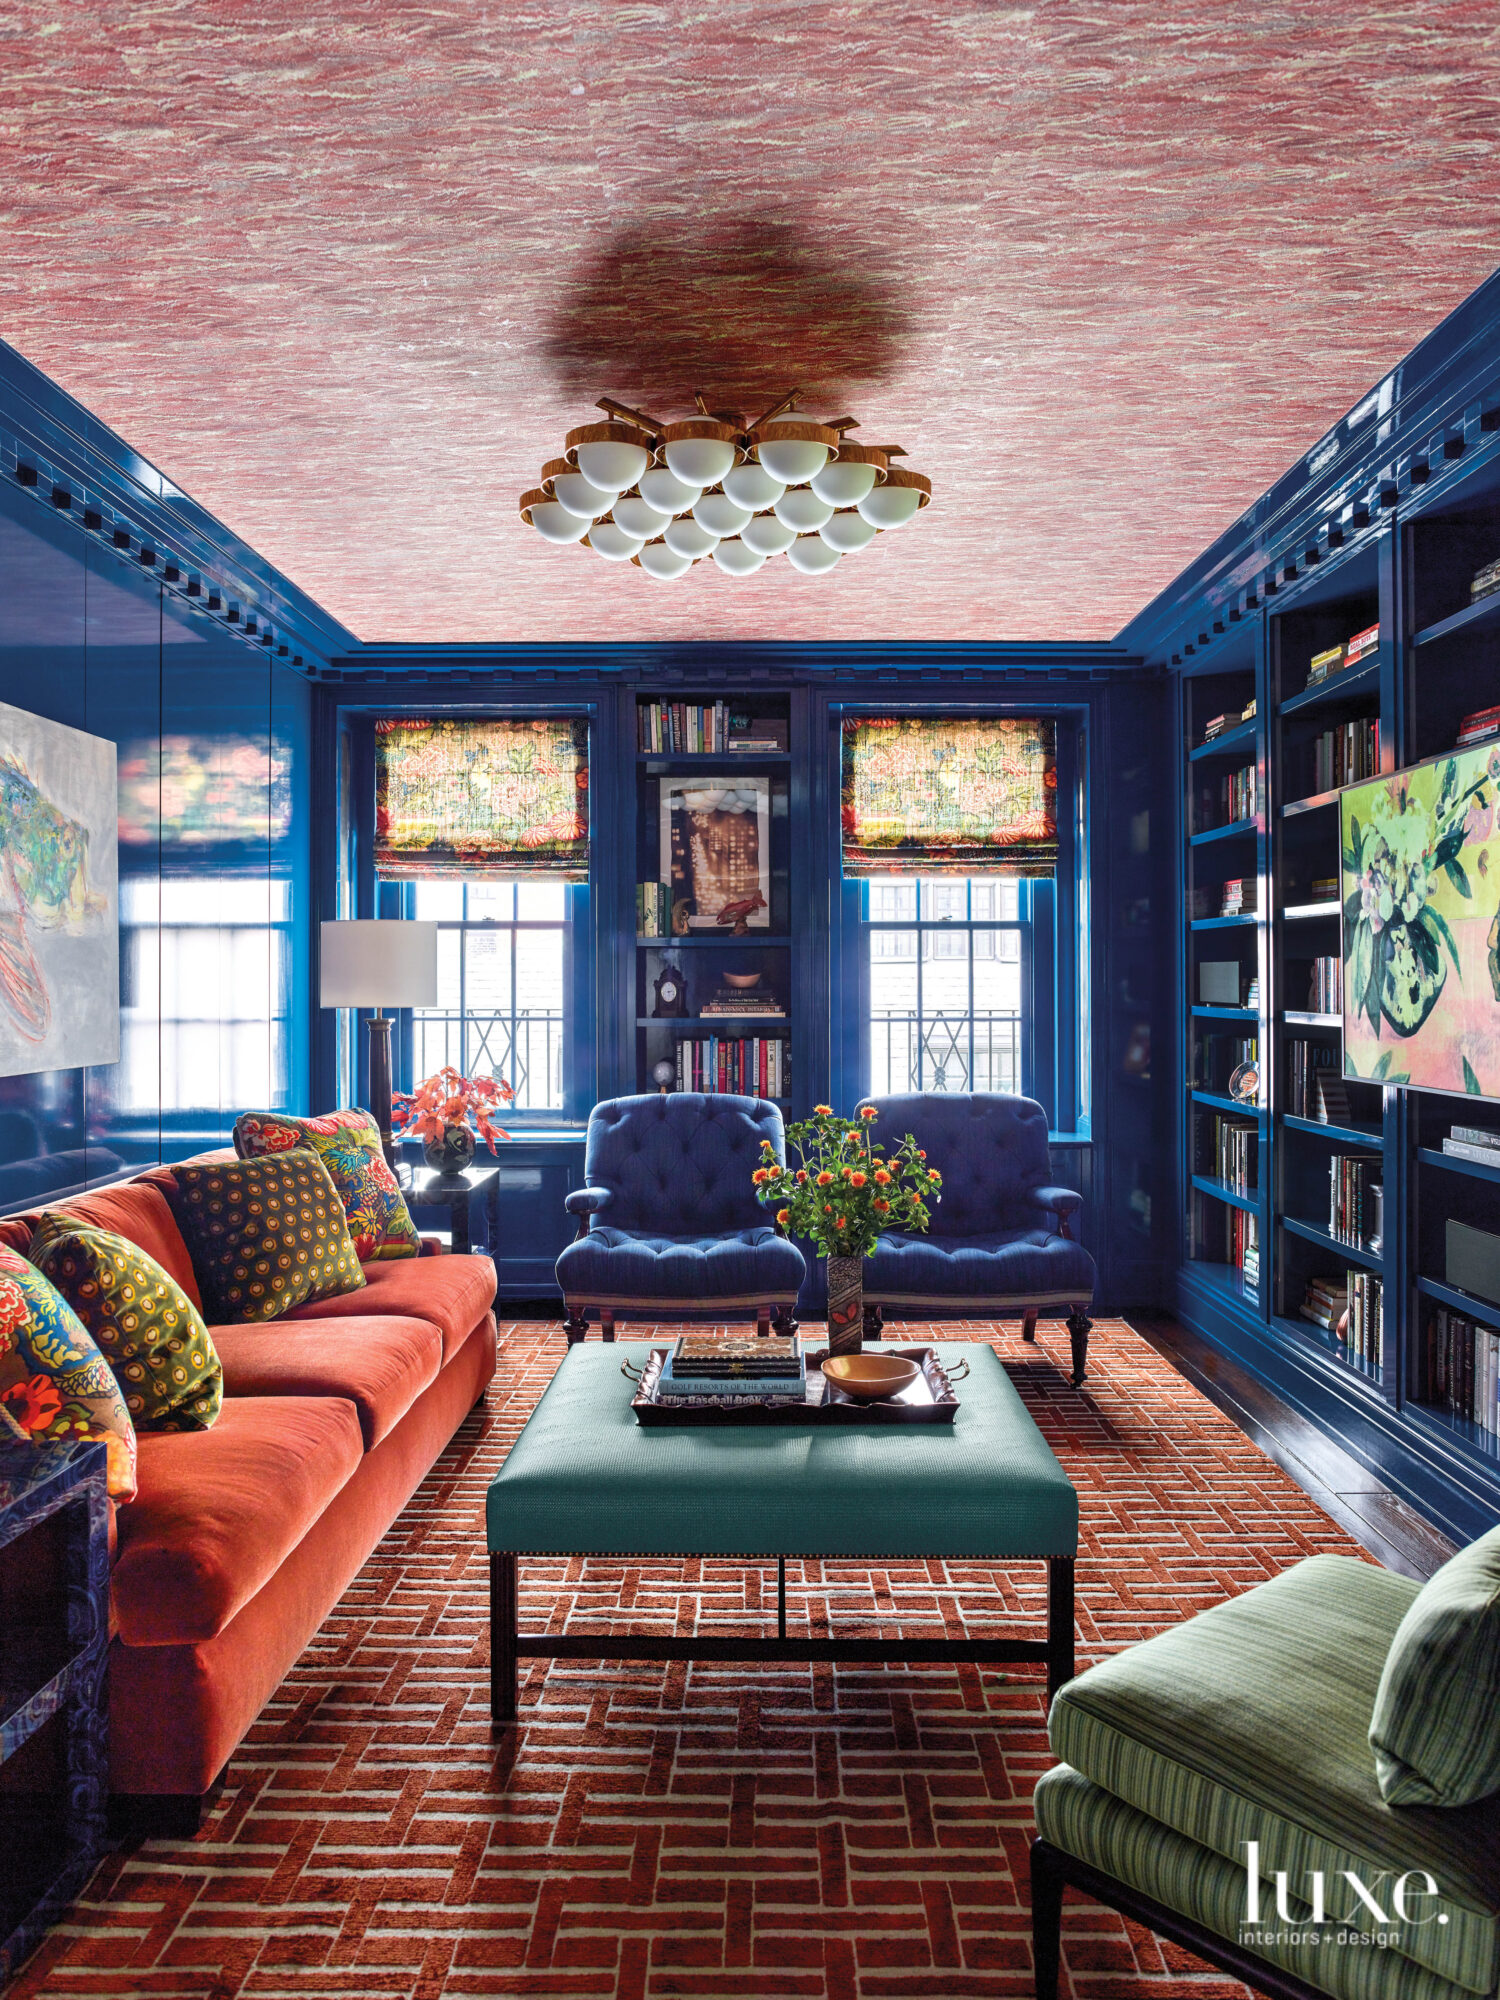 All About A Spunky Vibe: An UES Home Puts A Zingy Twist On The Traditional